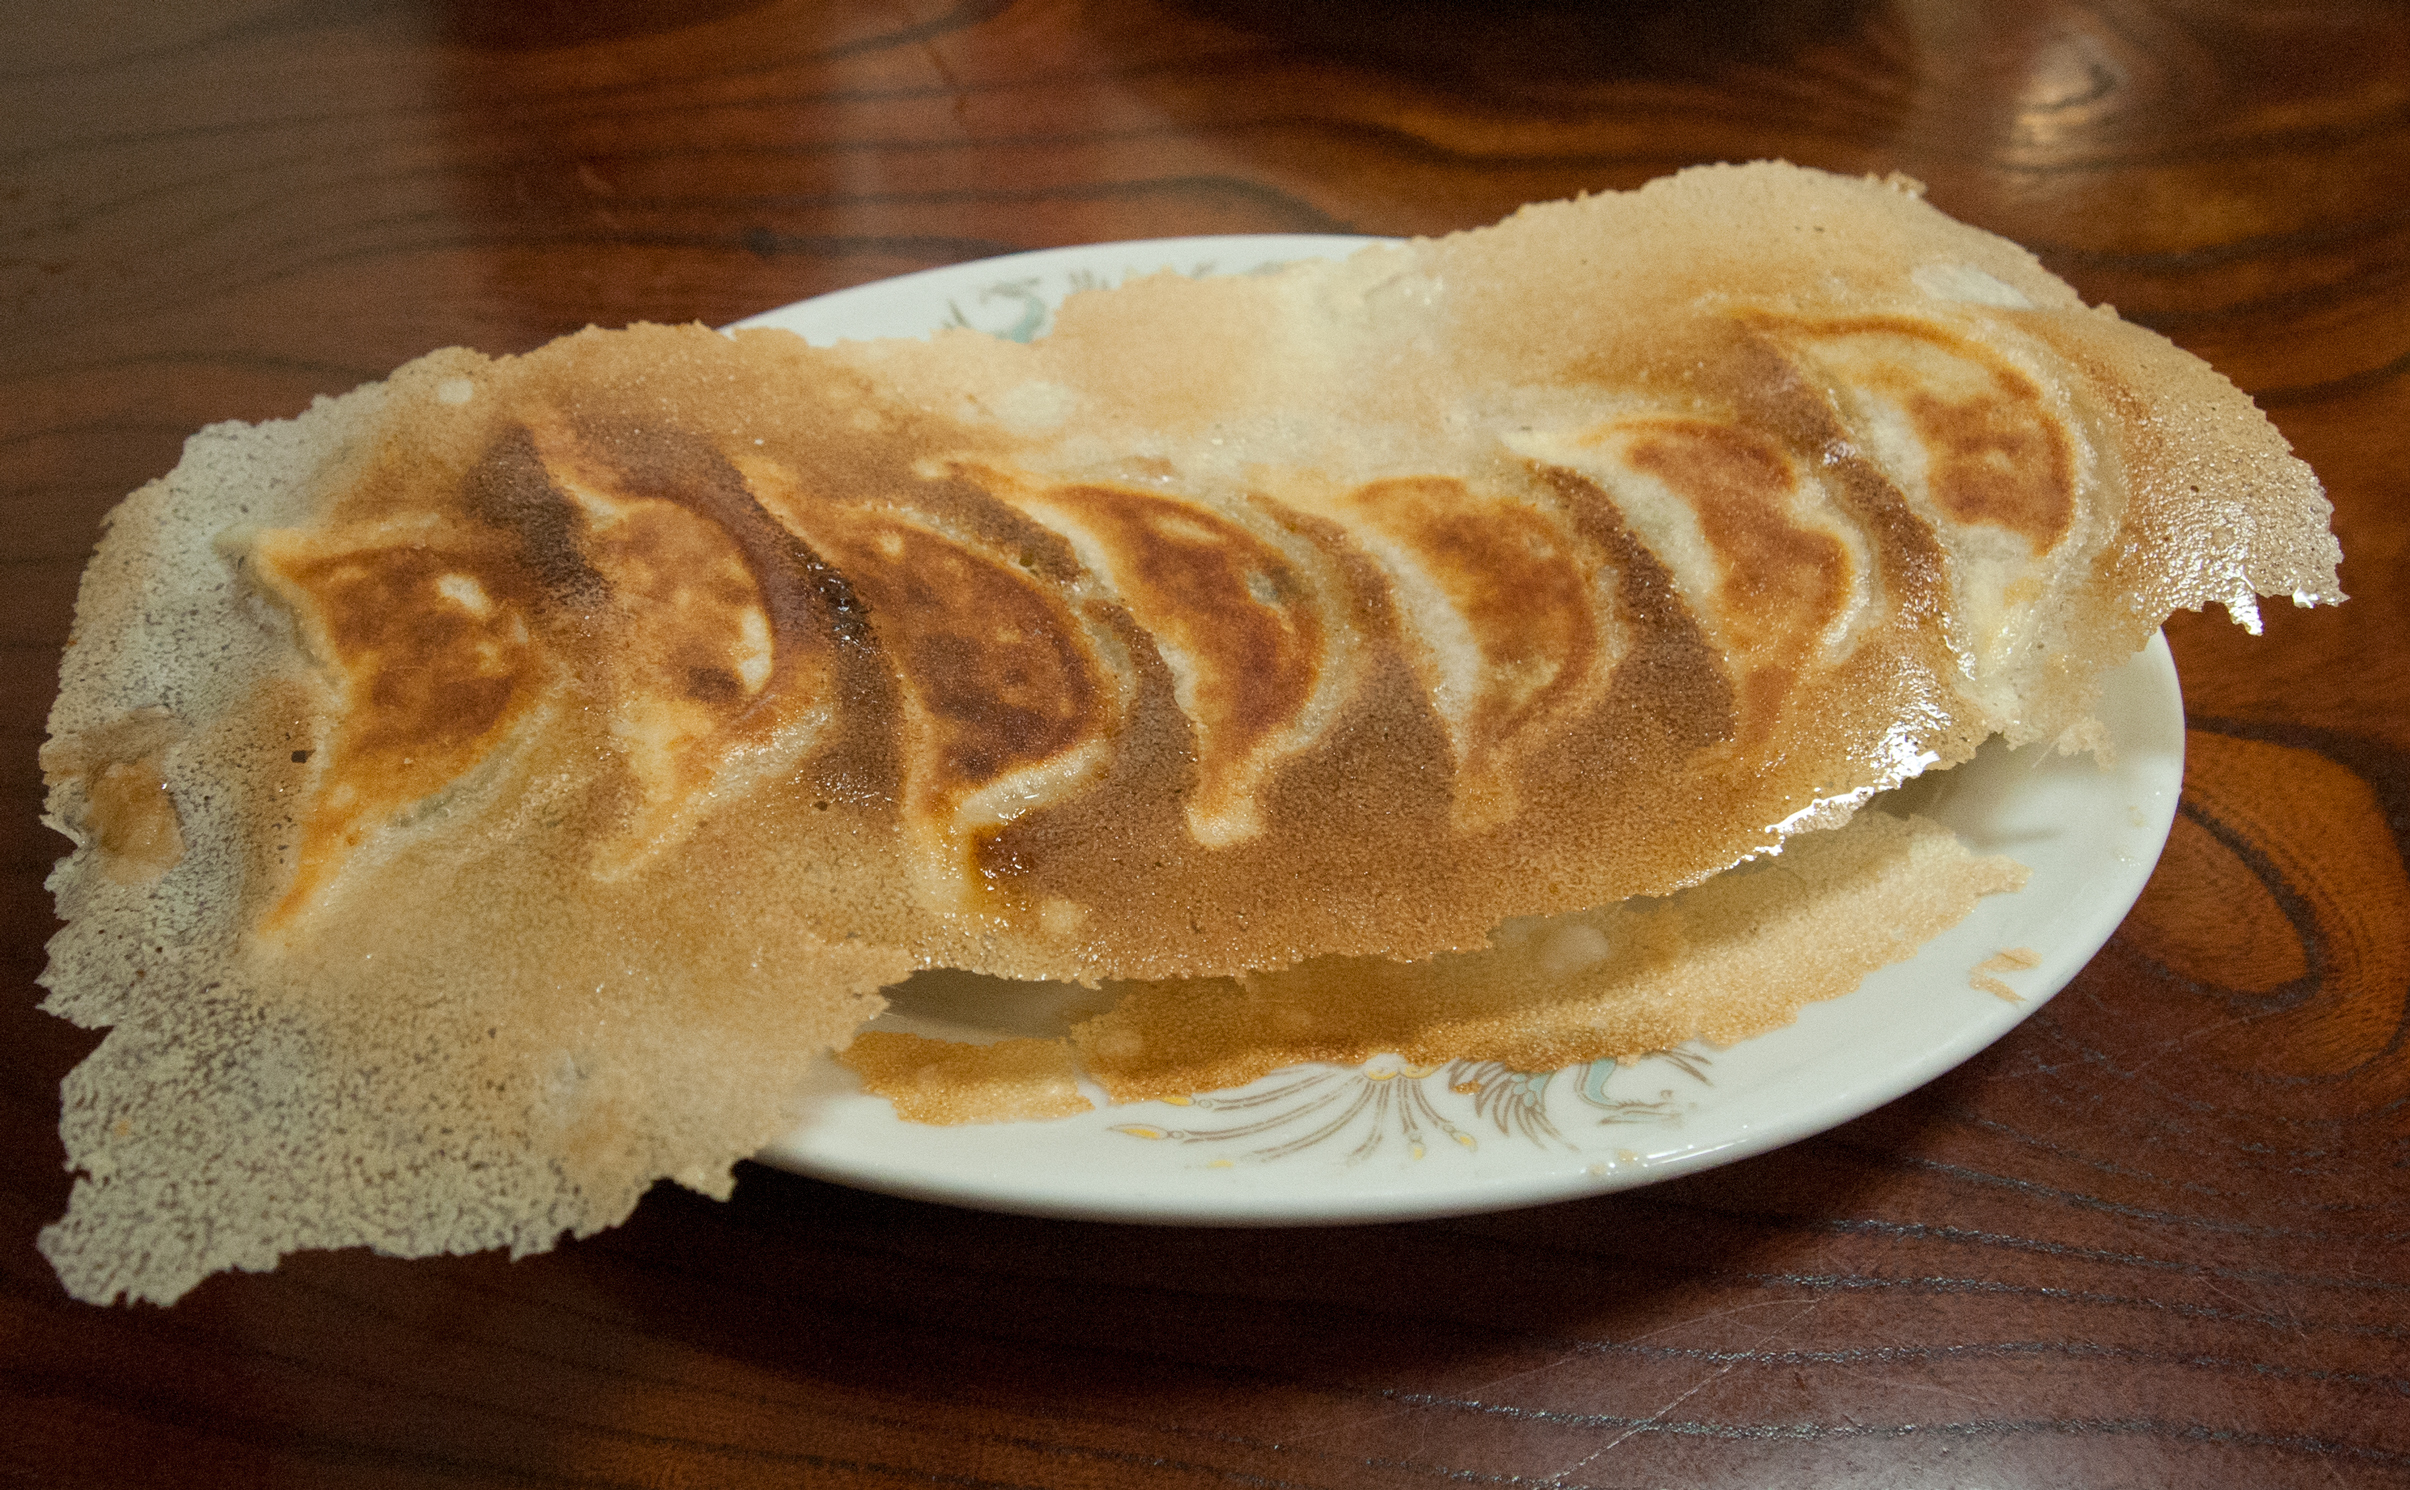 Snack on crispy 'winged gyoza' at Hoanyon